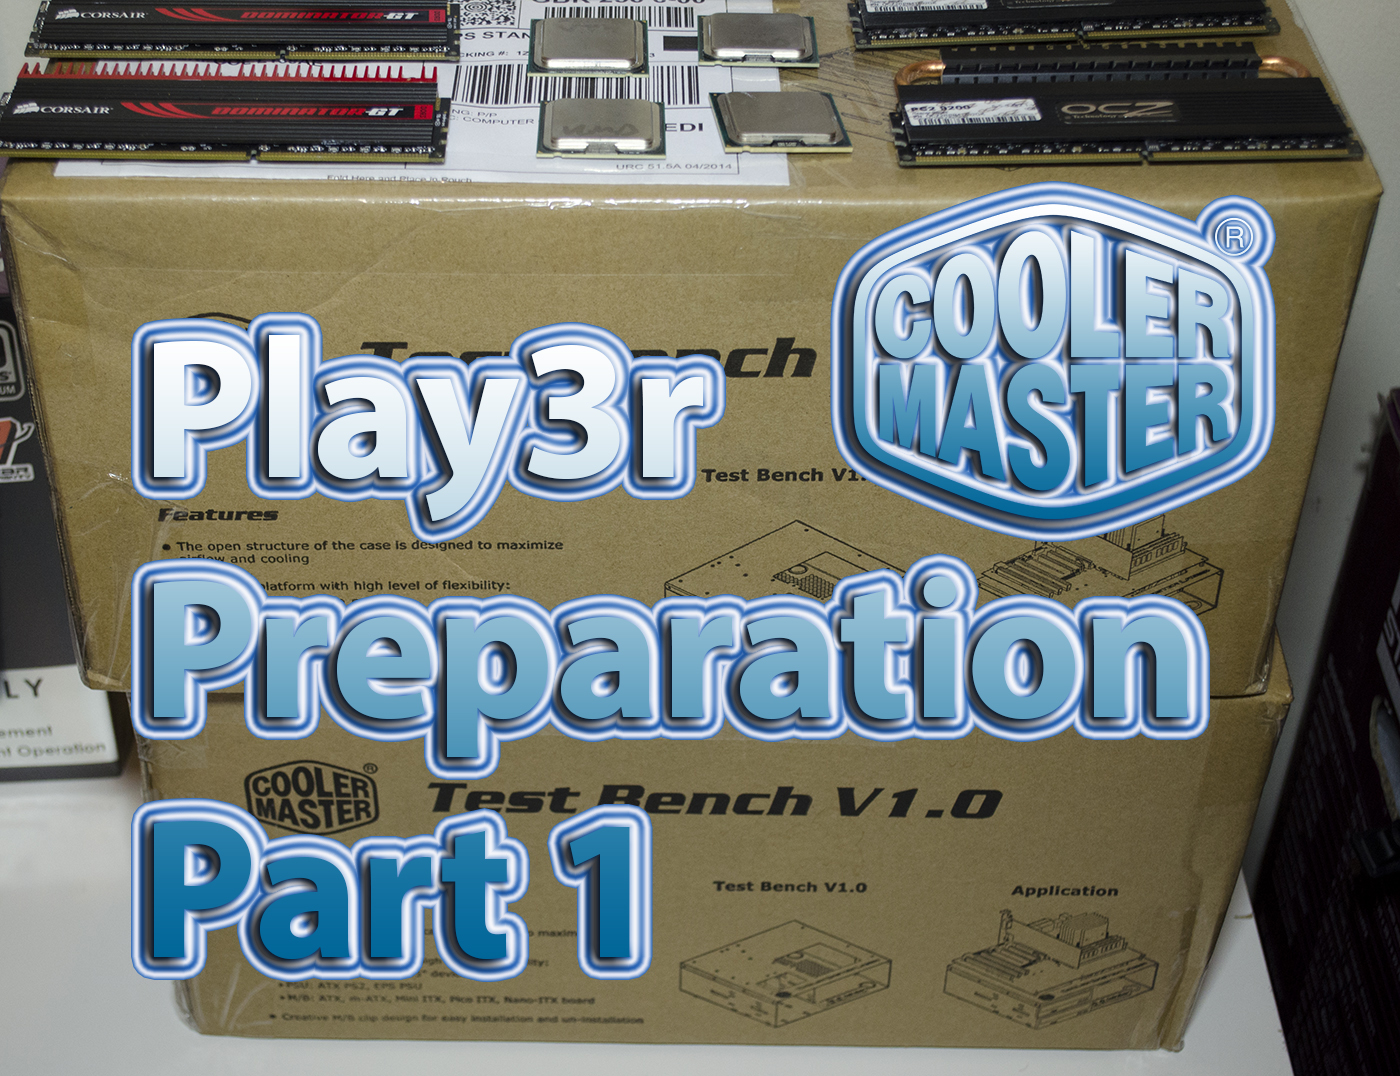 Play3r Overclocking Team Bench Meet Preparations Part 1 5